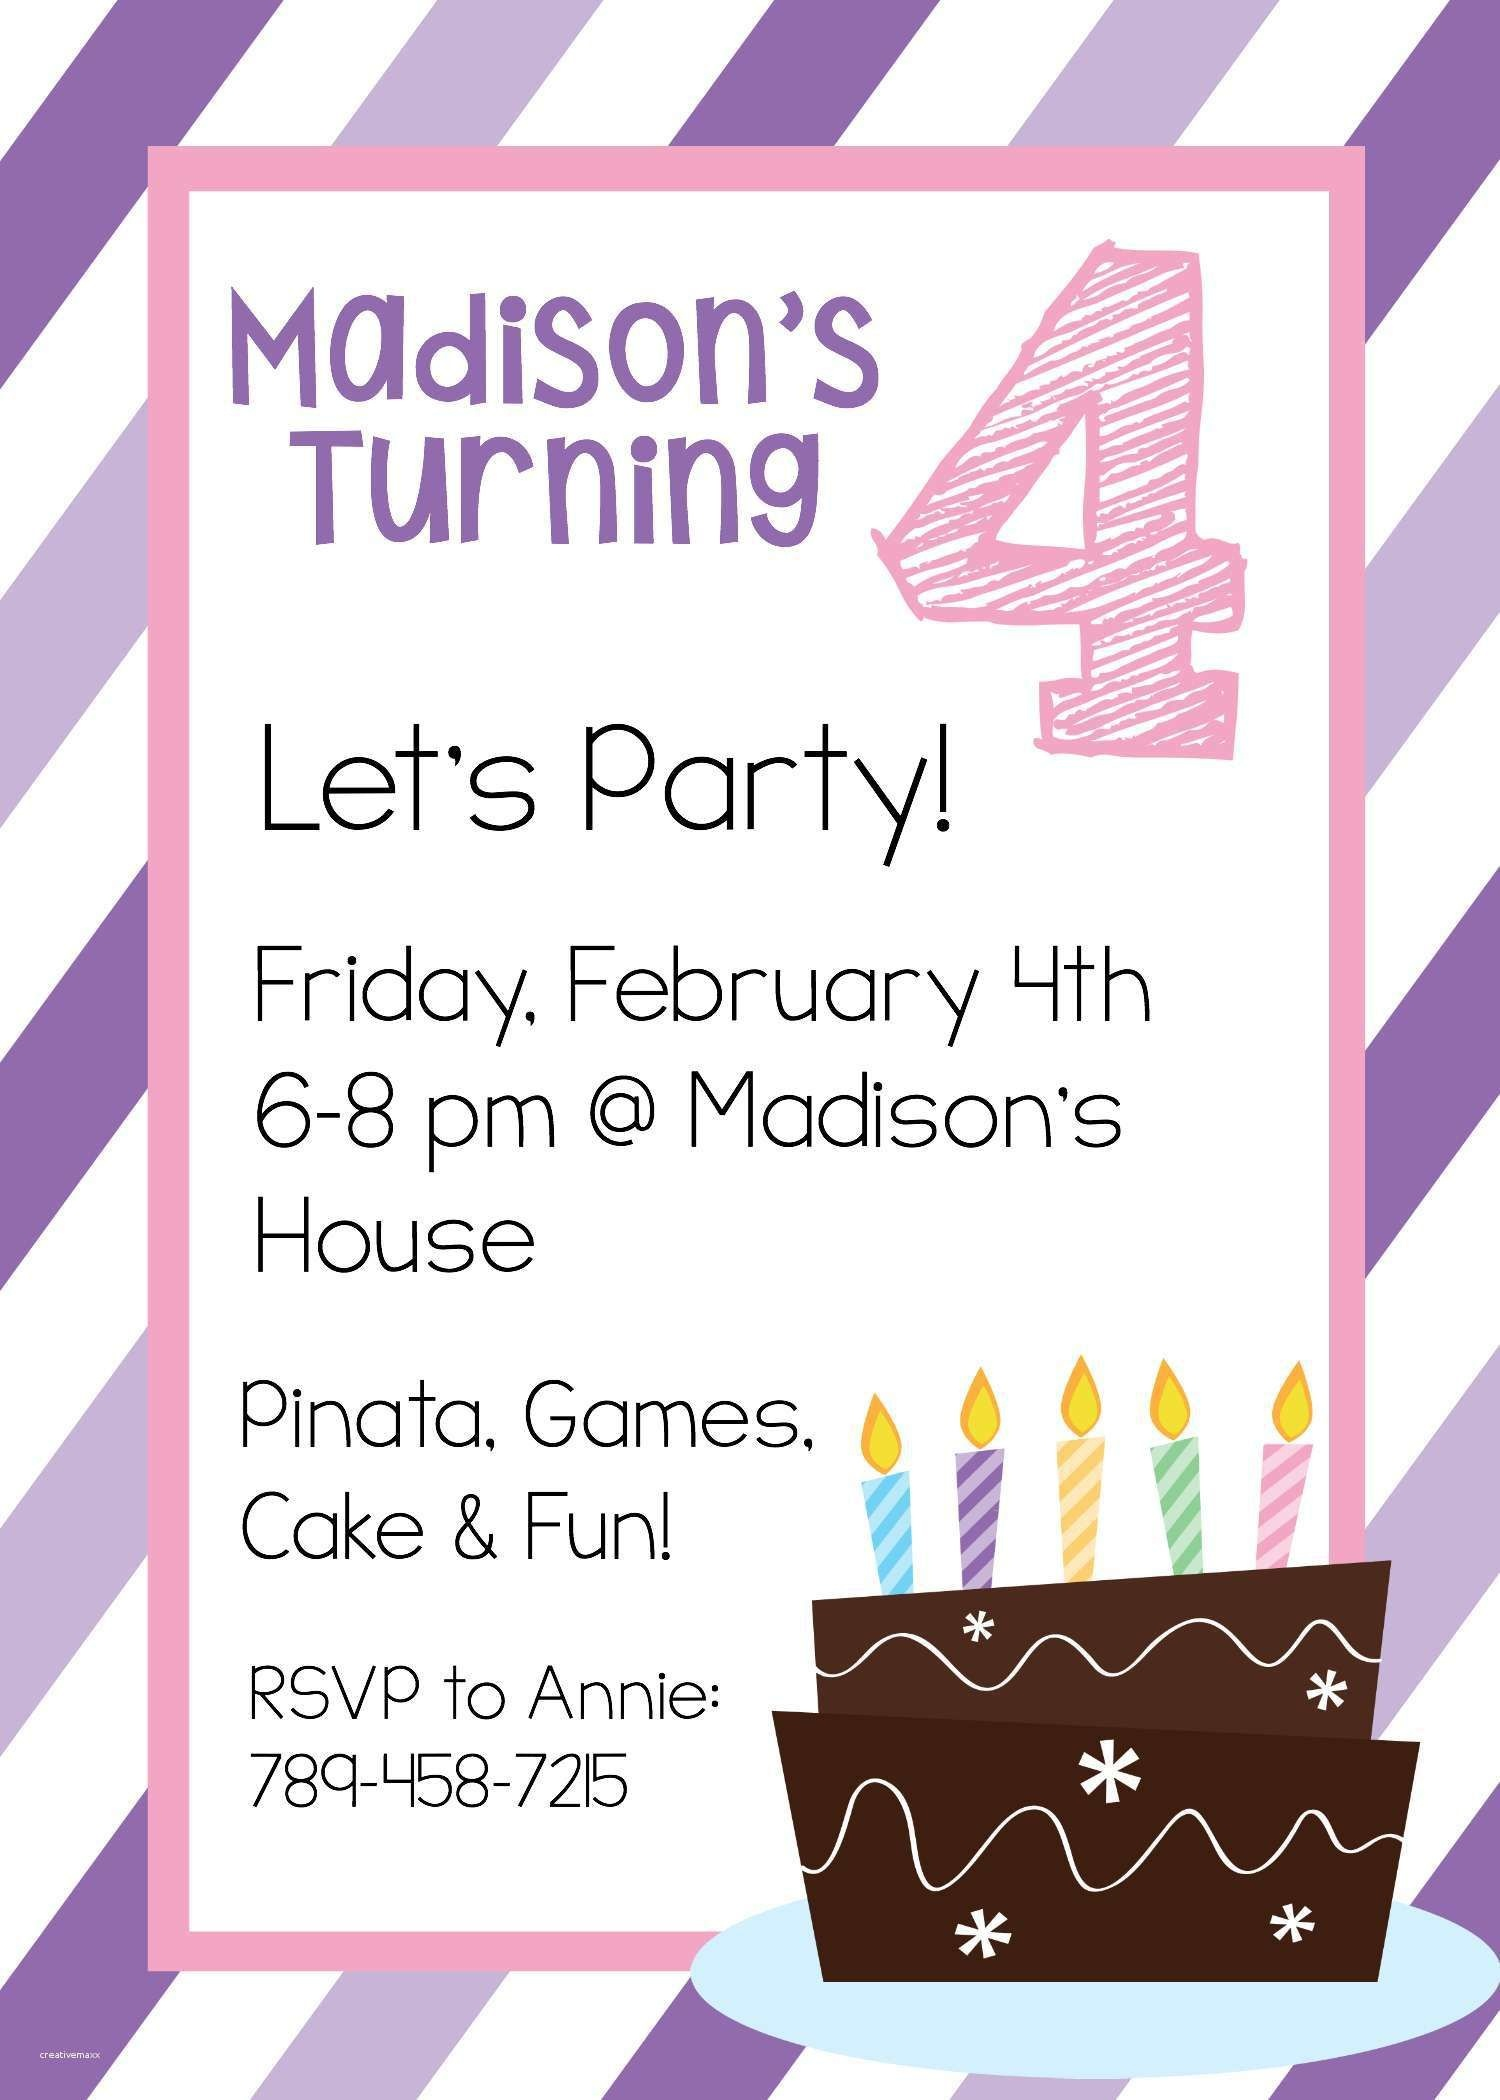 New Free Online Printable Birthday Party Invitations | Holiday - Make Printable Party Invitations Online Free